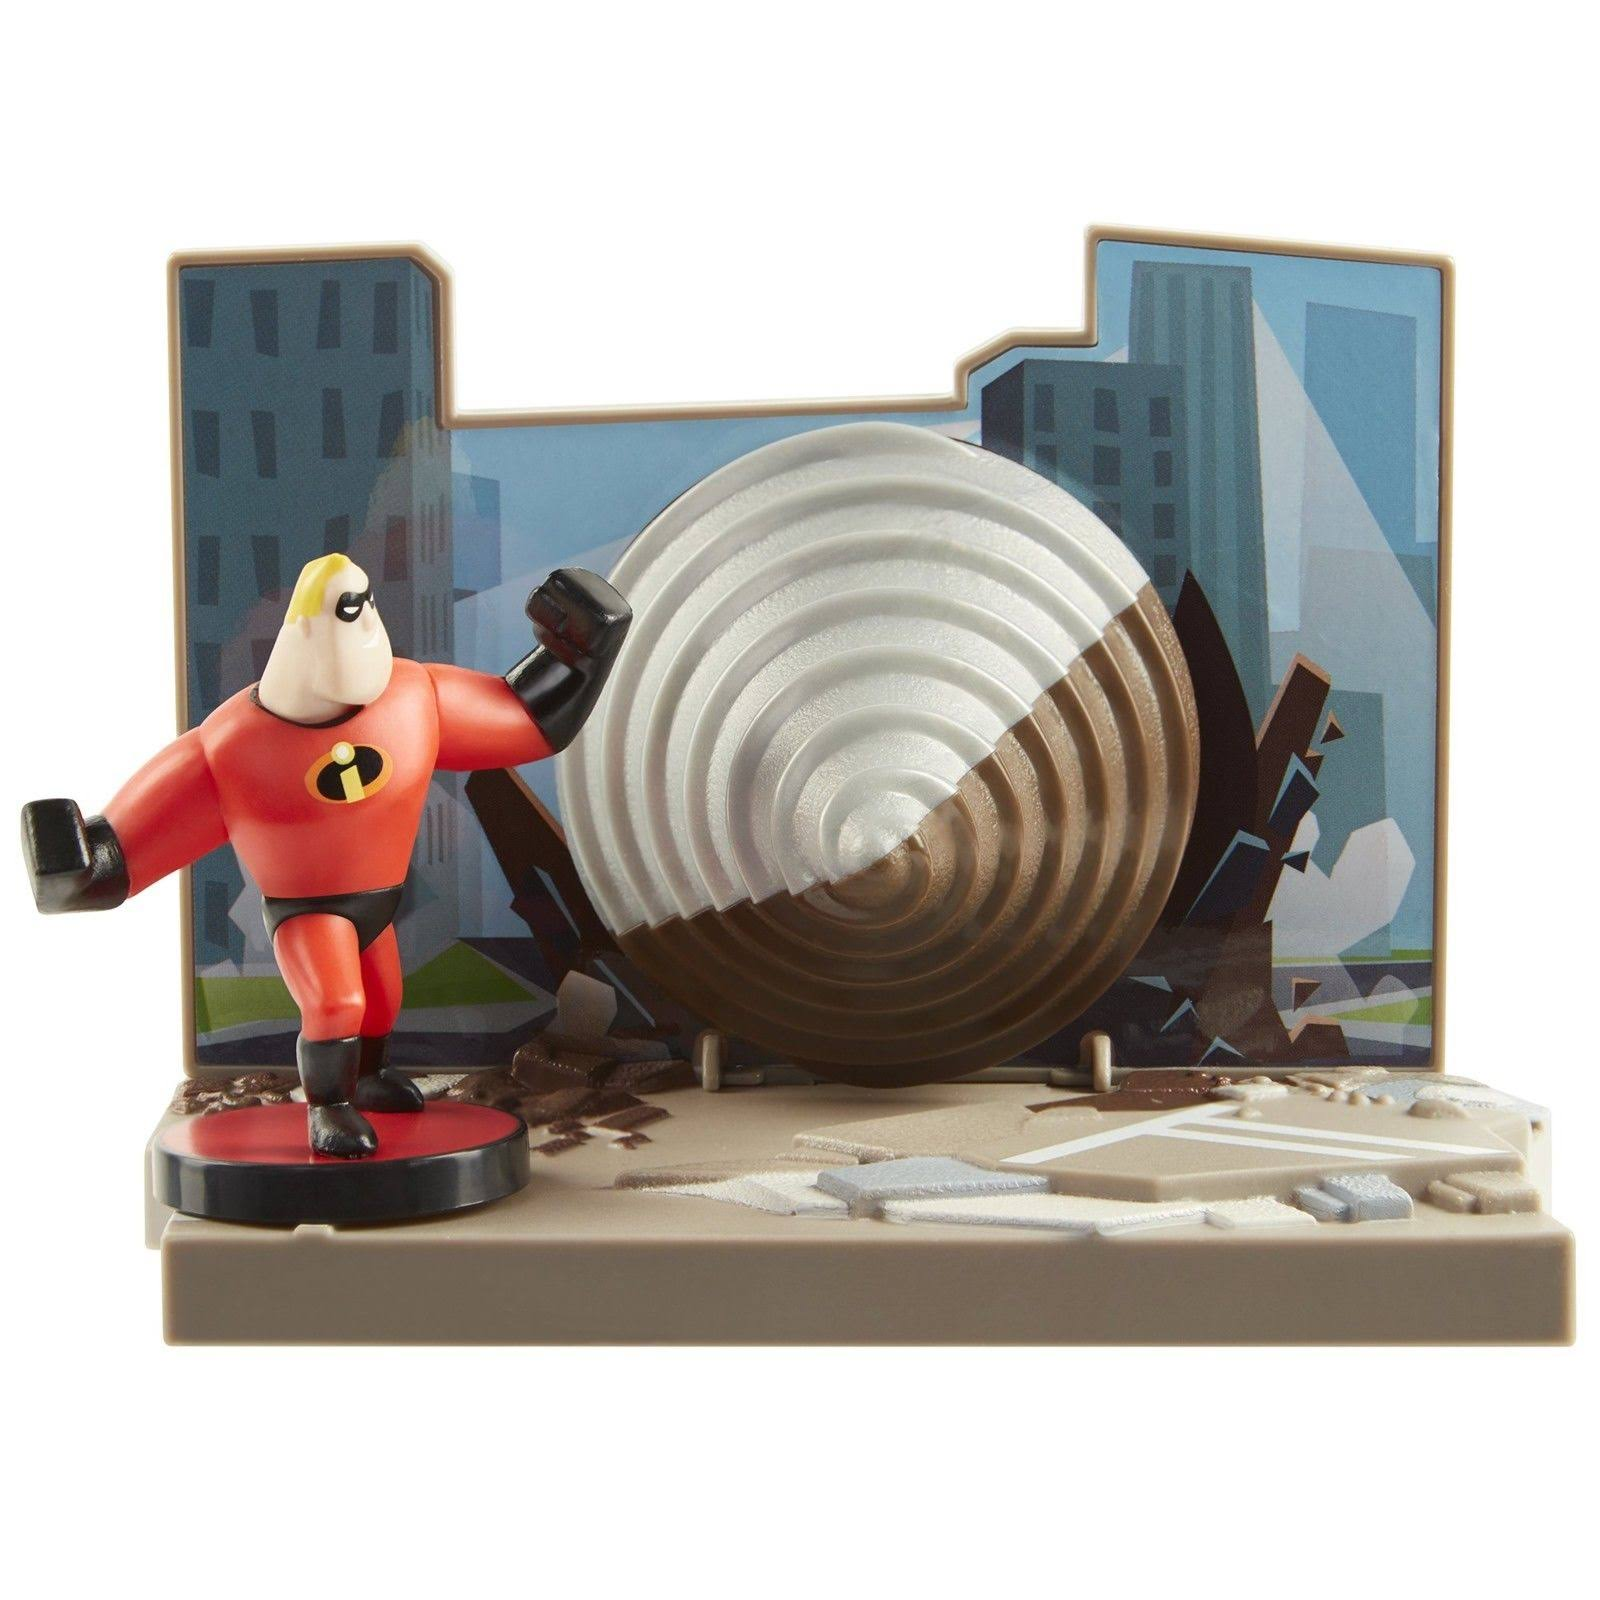 Disney Pixar 74931 Incredibles 2 Drill Attack Playset